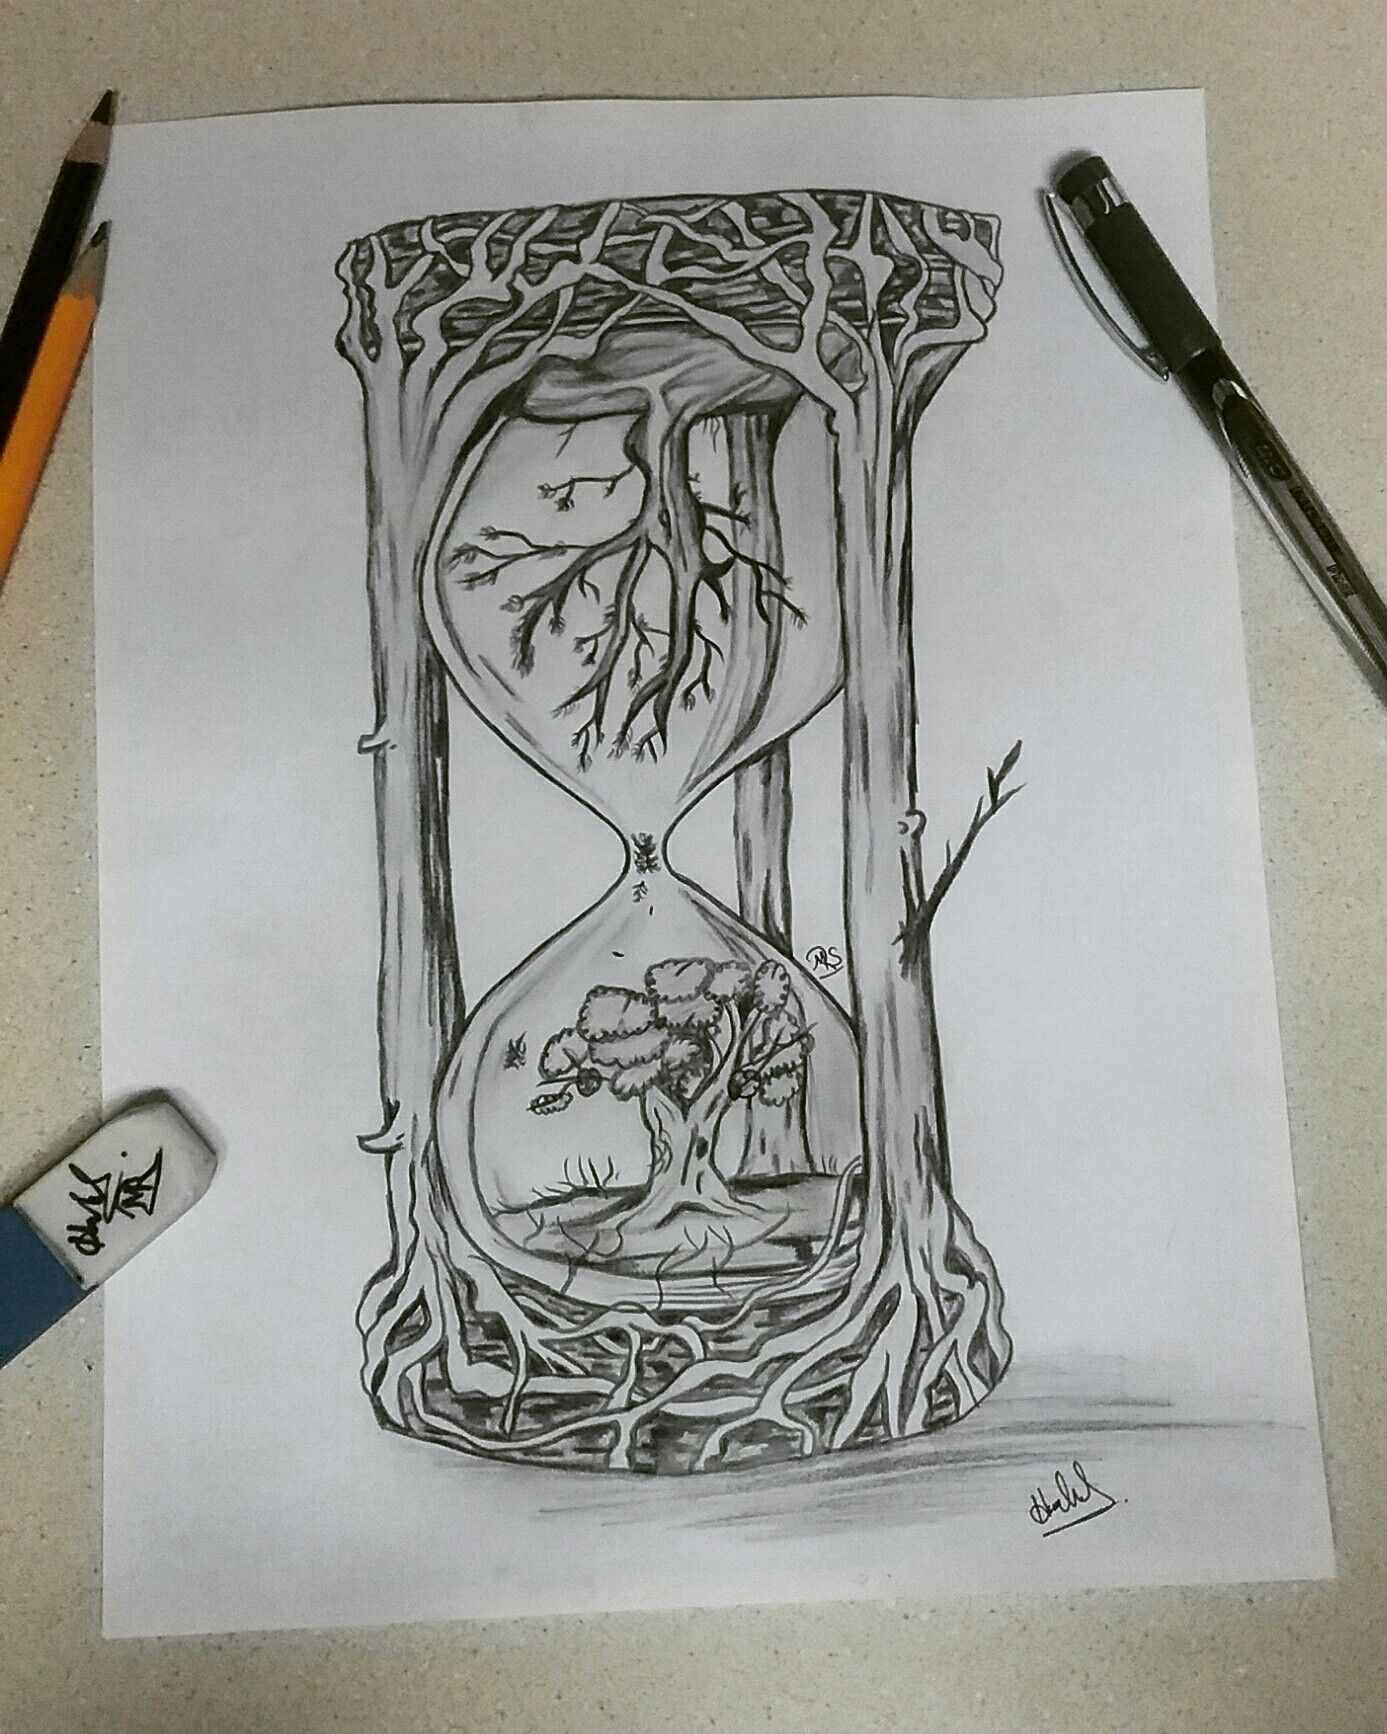 Creative Unique Sketches : creative, unique, sketches, Creative, Hourglass, Drawing...., Drawing,, Pencil, Drawings,, Drawing, Artwork